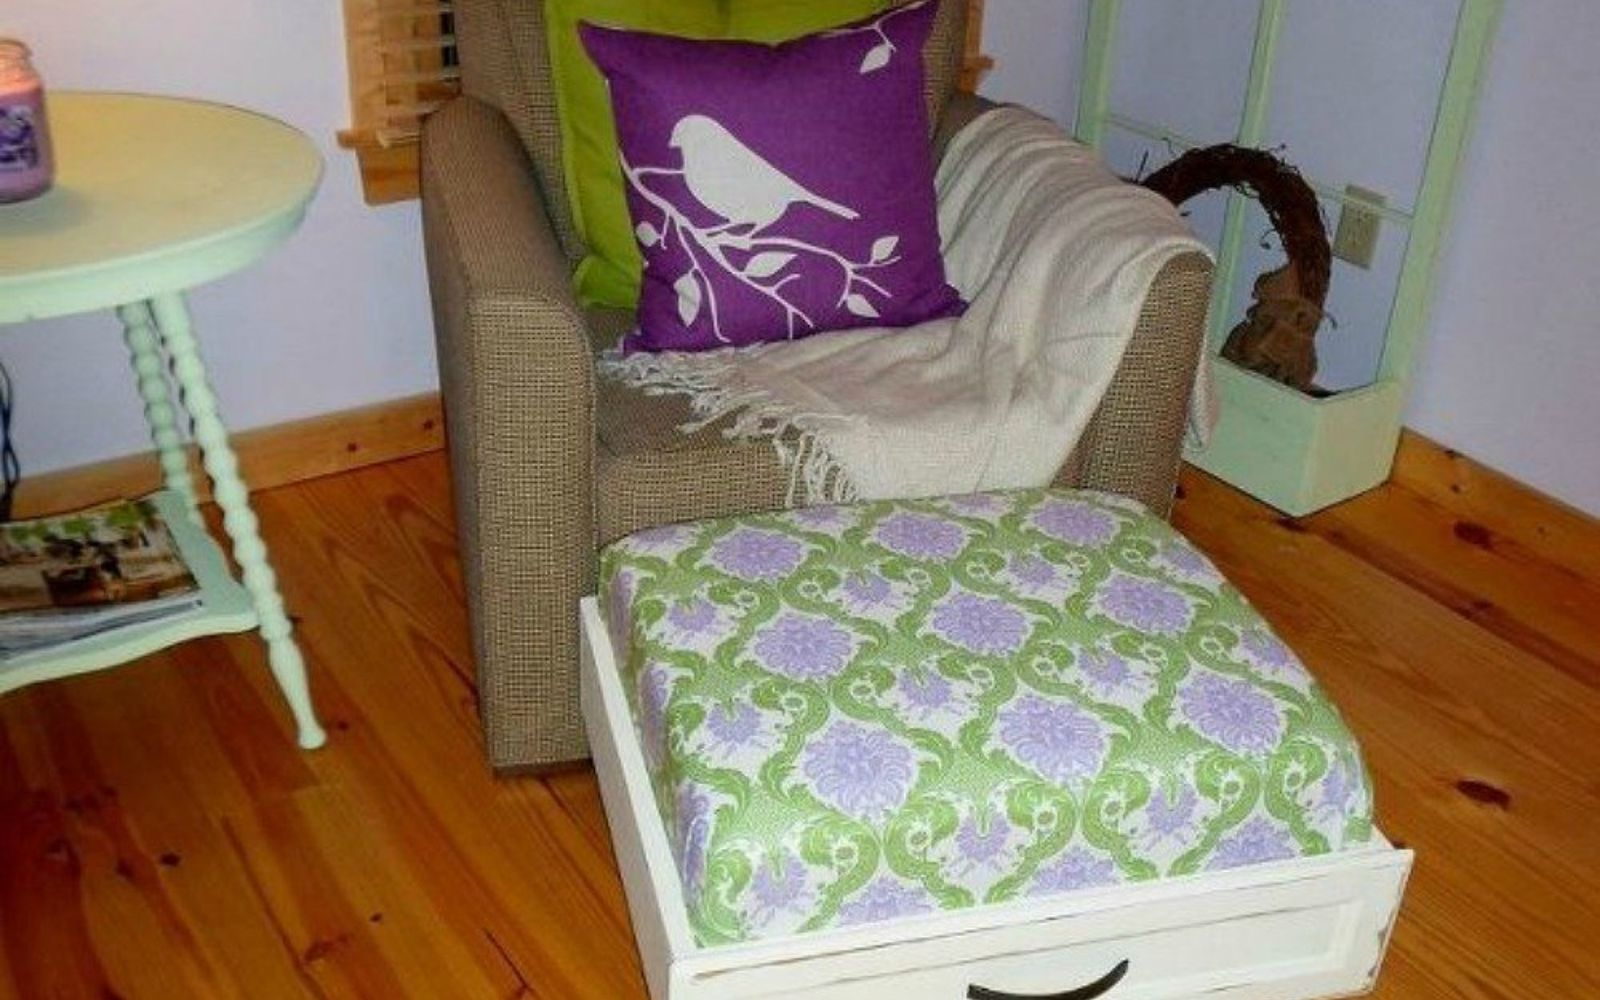 s pull drawers out of your dressers for these 12 brilliant ideas, painted furniture, Convert them into comfy ottomans